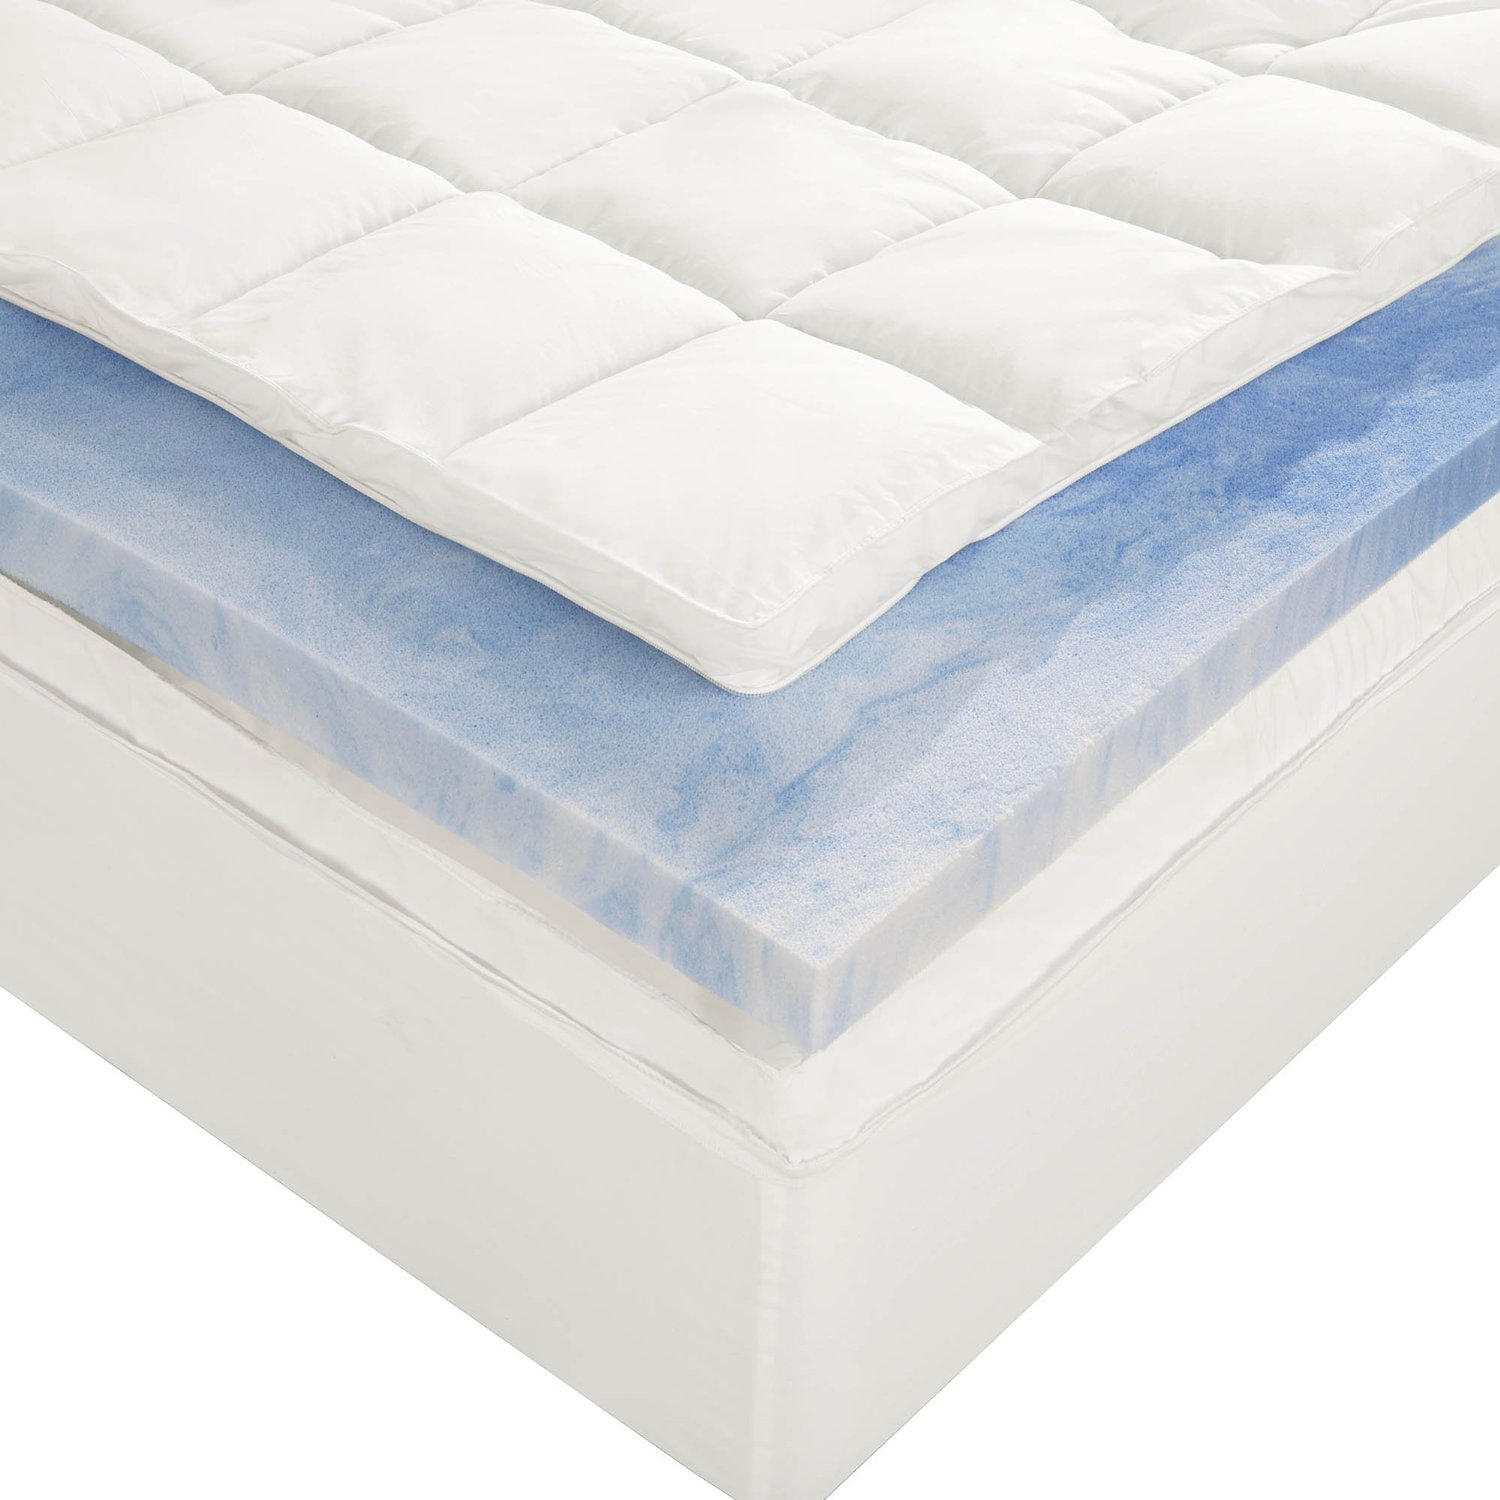 amazon foam mattress topper 8 Best Memory Foam Mattress Toppers to Boost Your Sleep Quality  amazon foam mattress topper